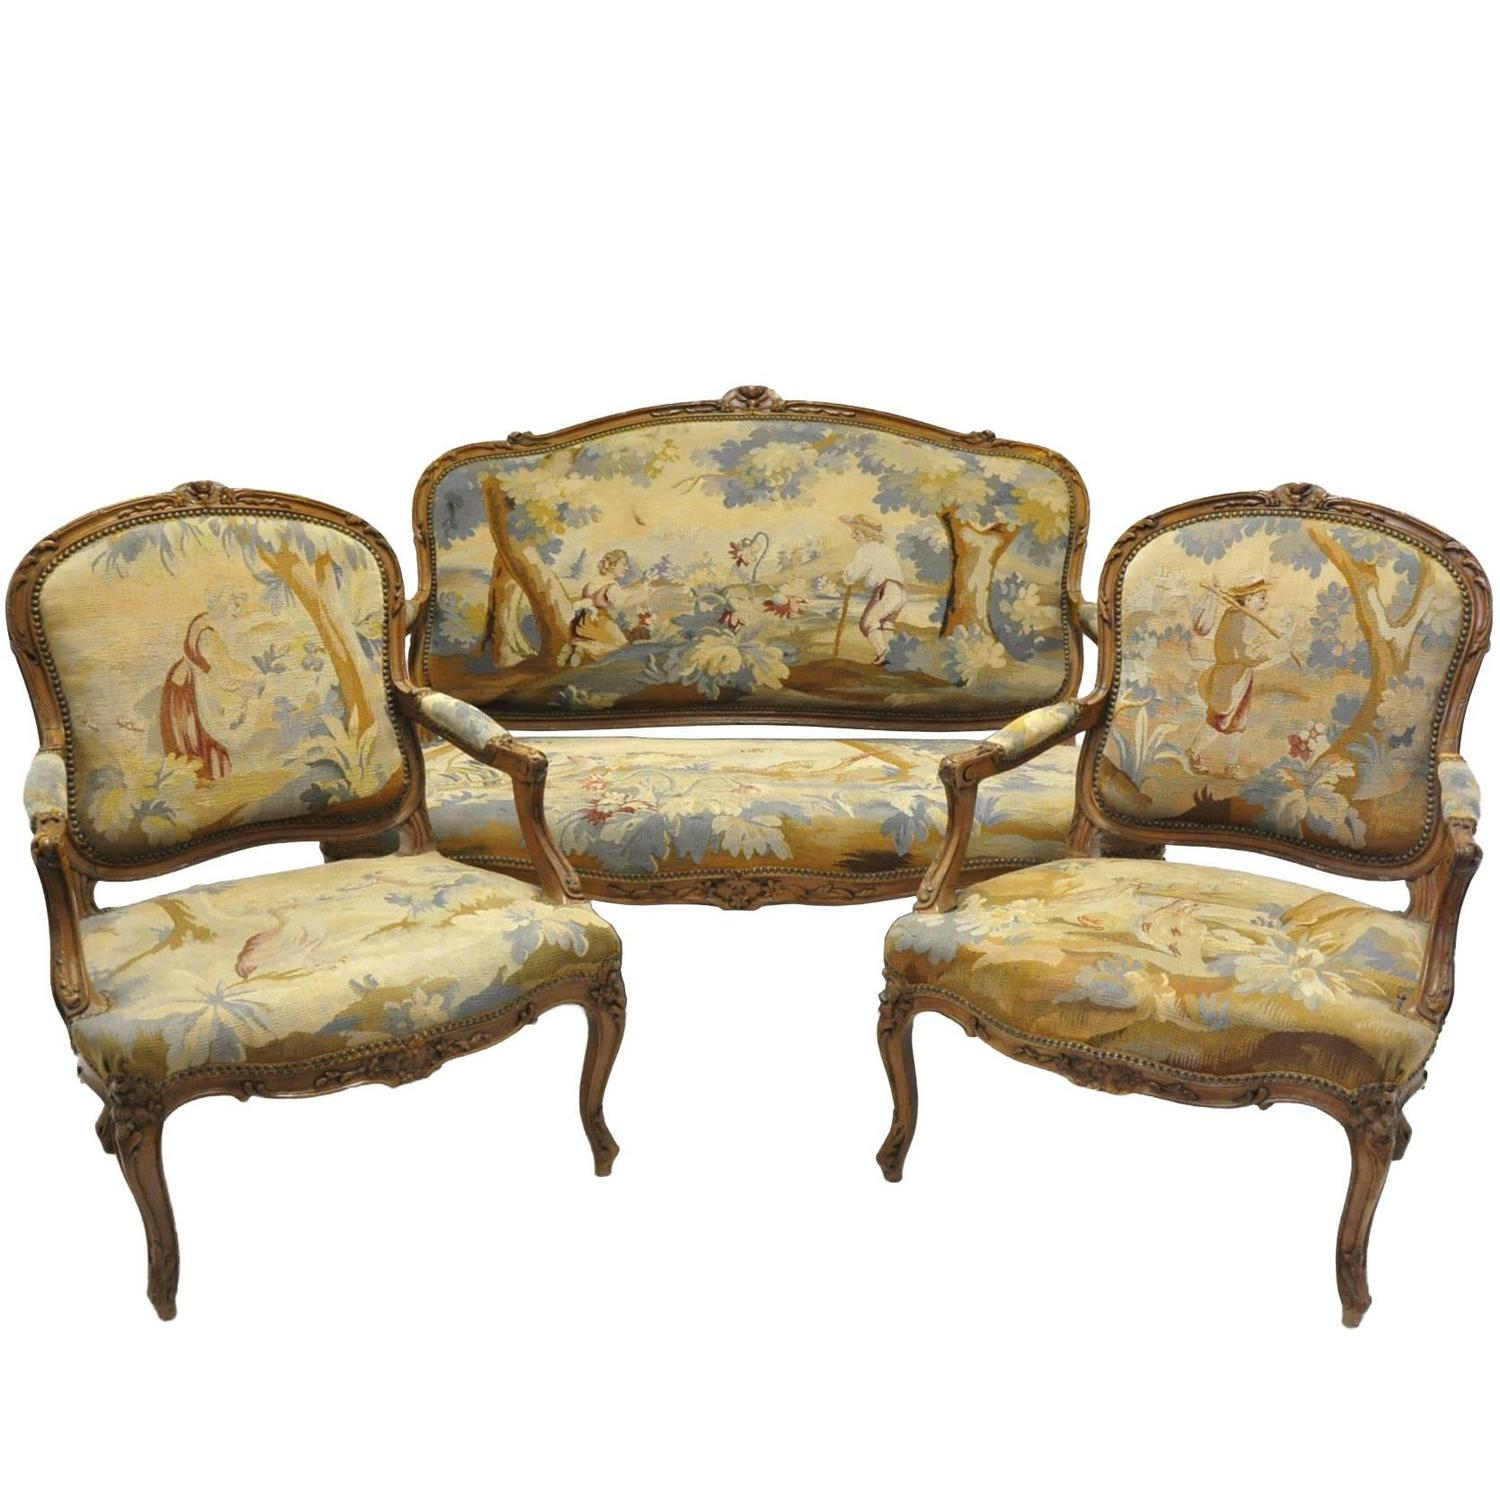 Three piece antique louis xv salon seating set with for Salon louis xv